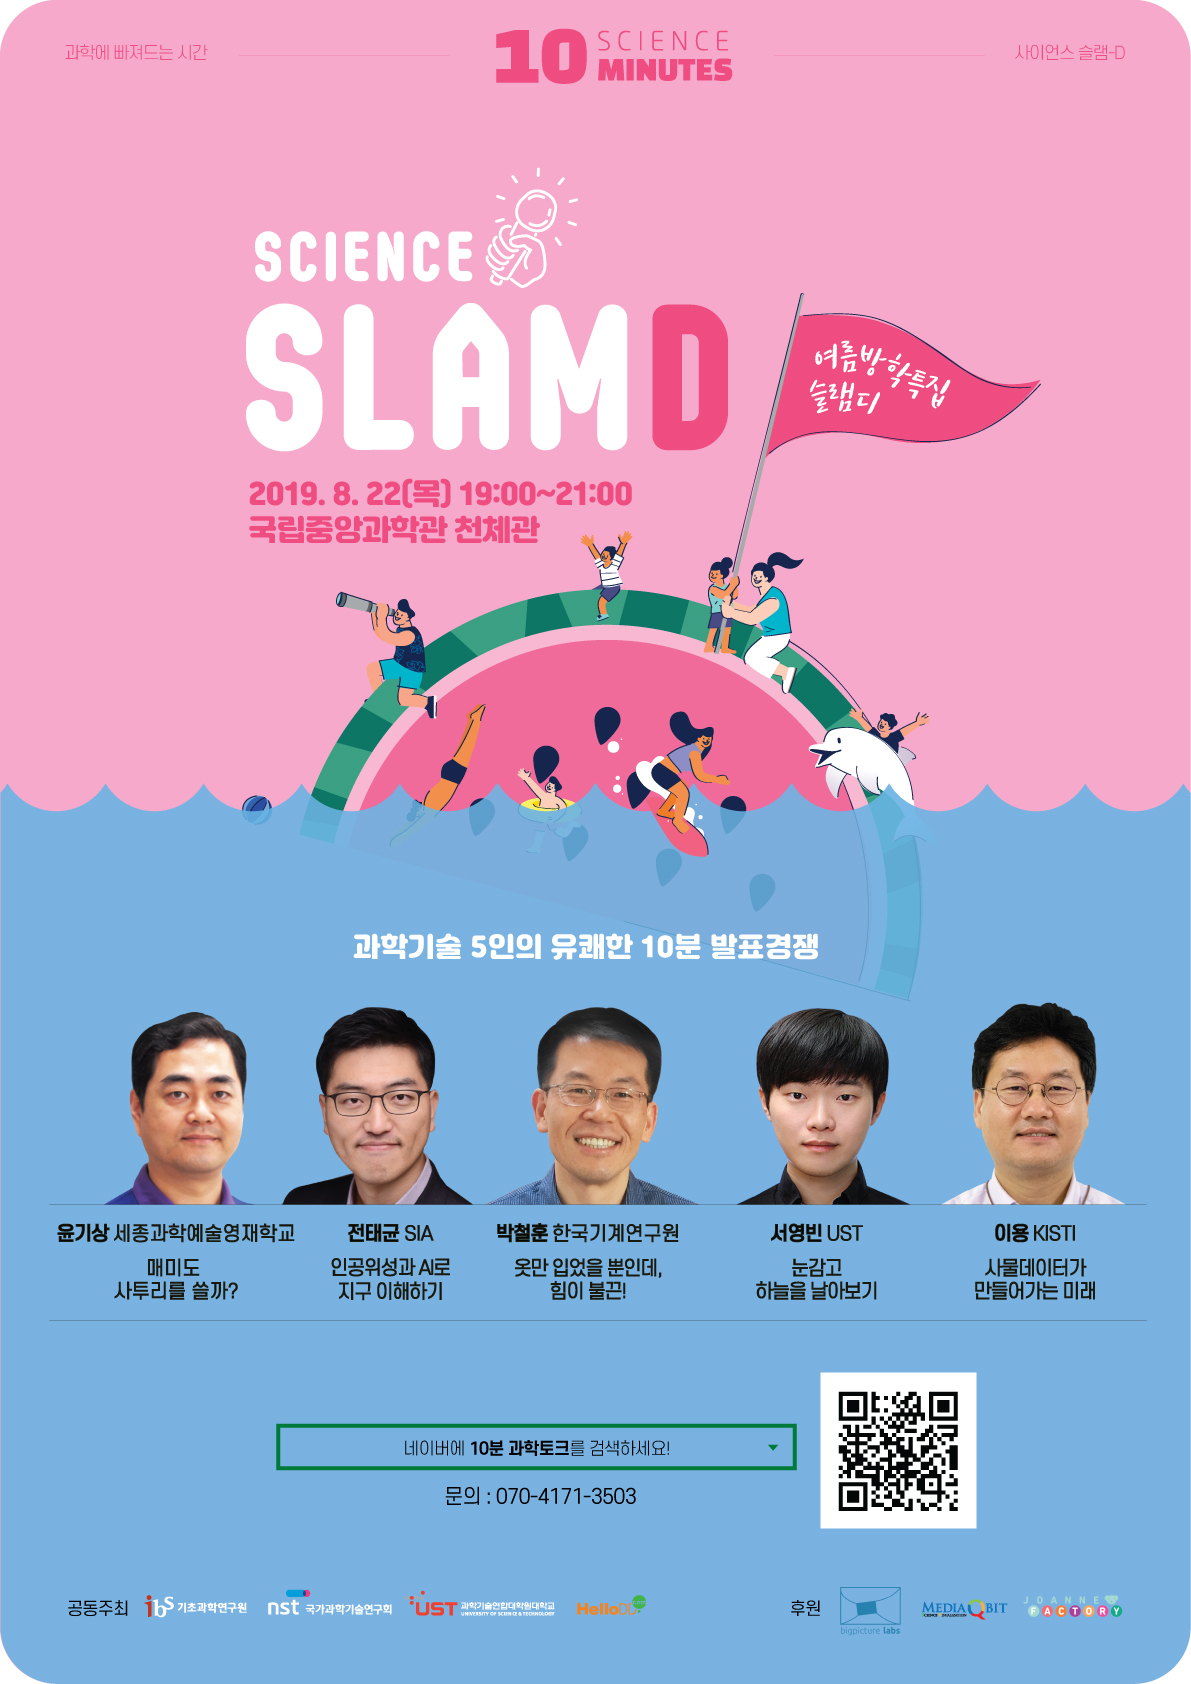 science slam-D 행사